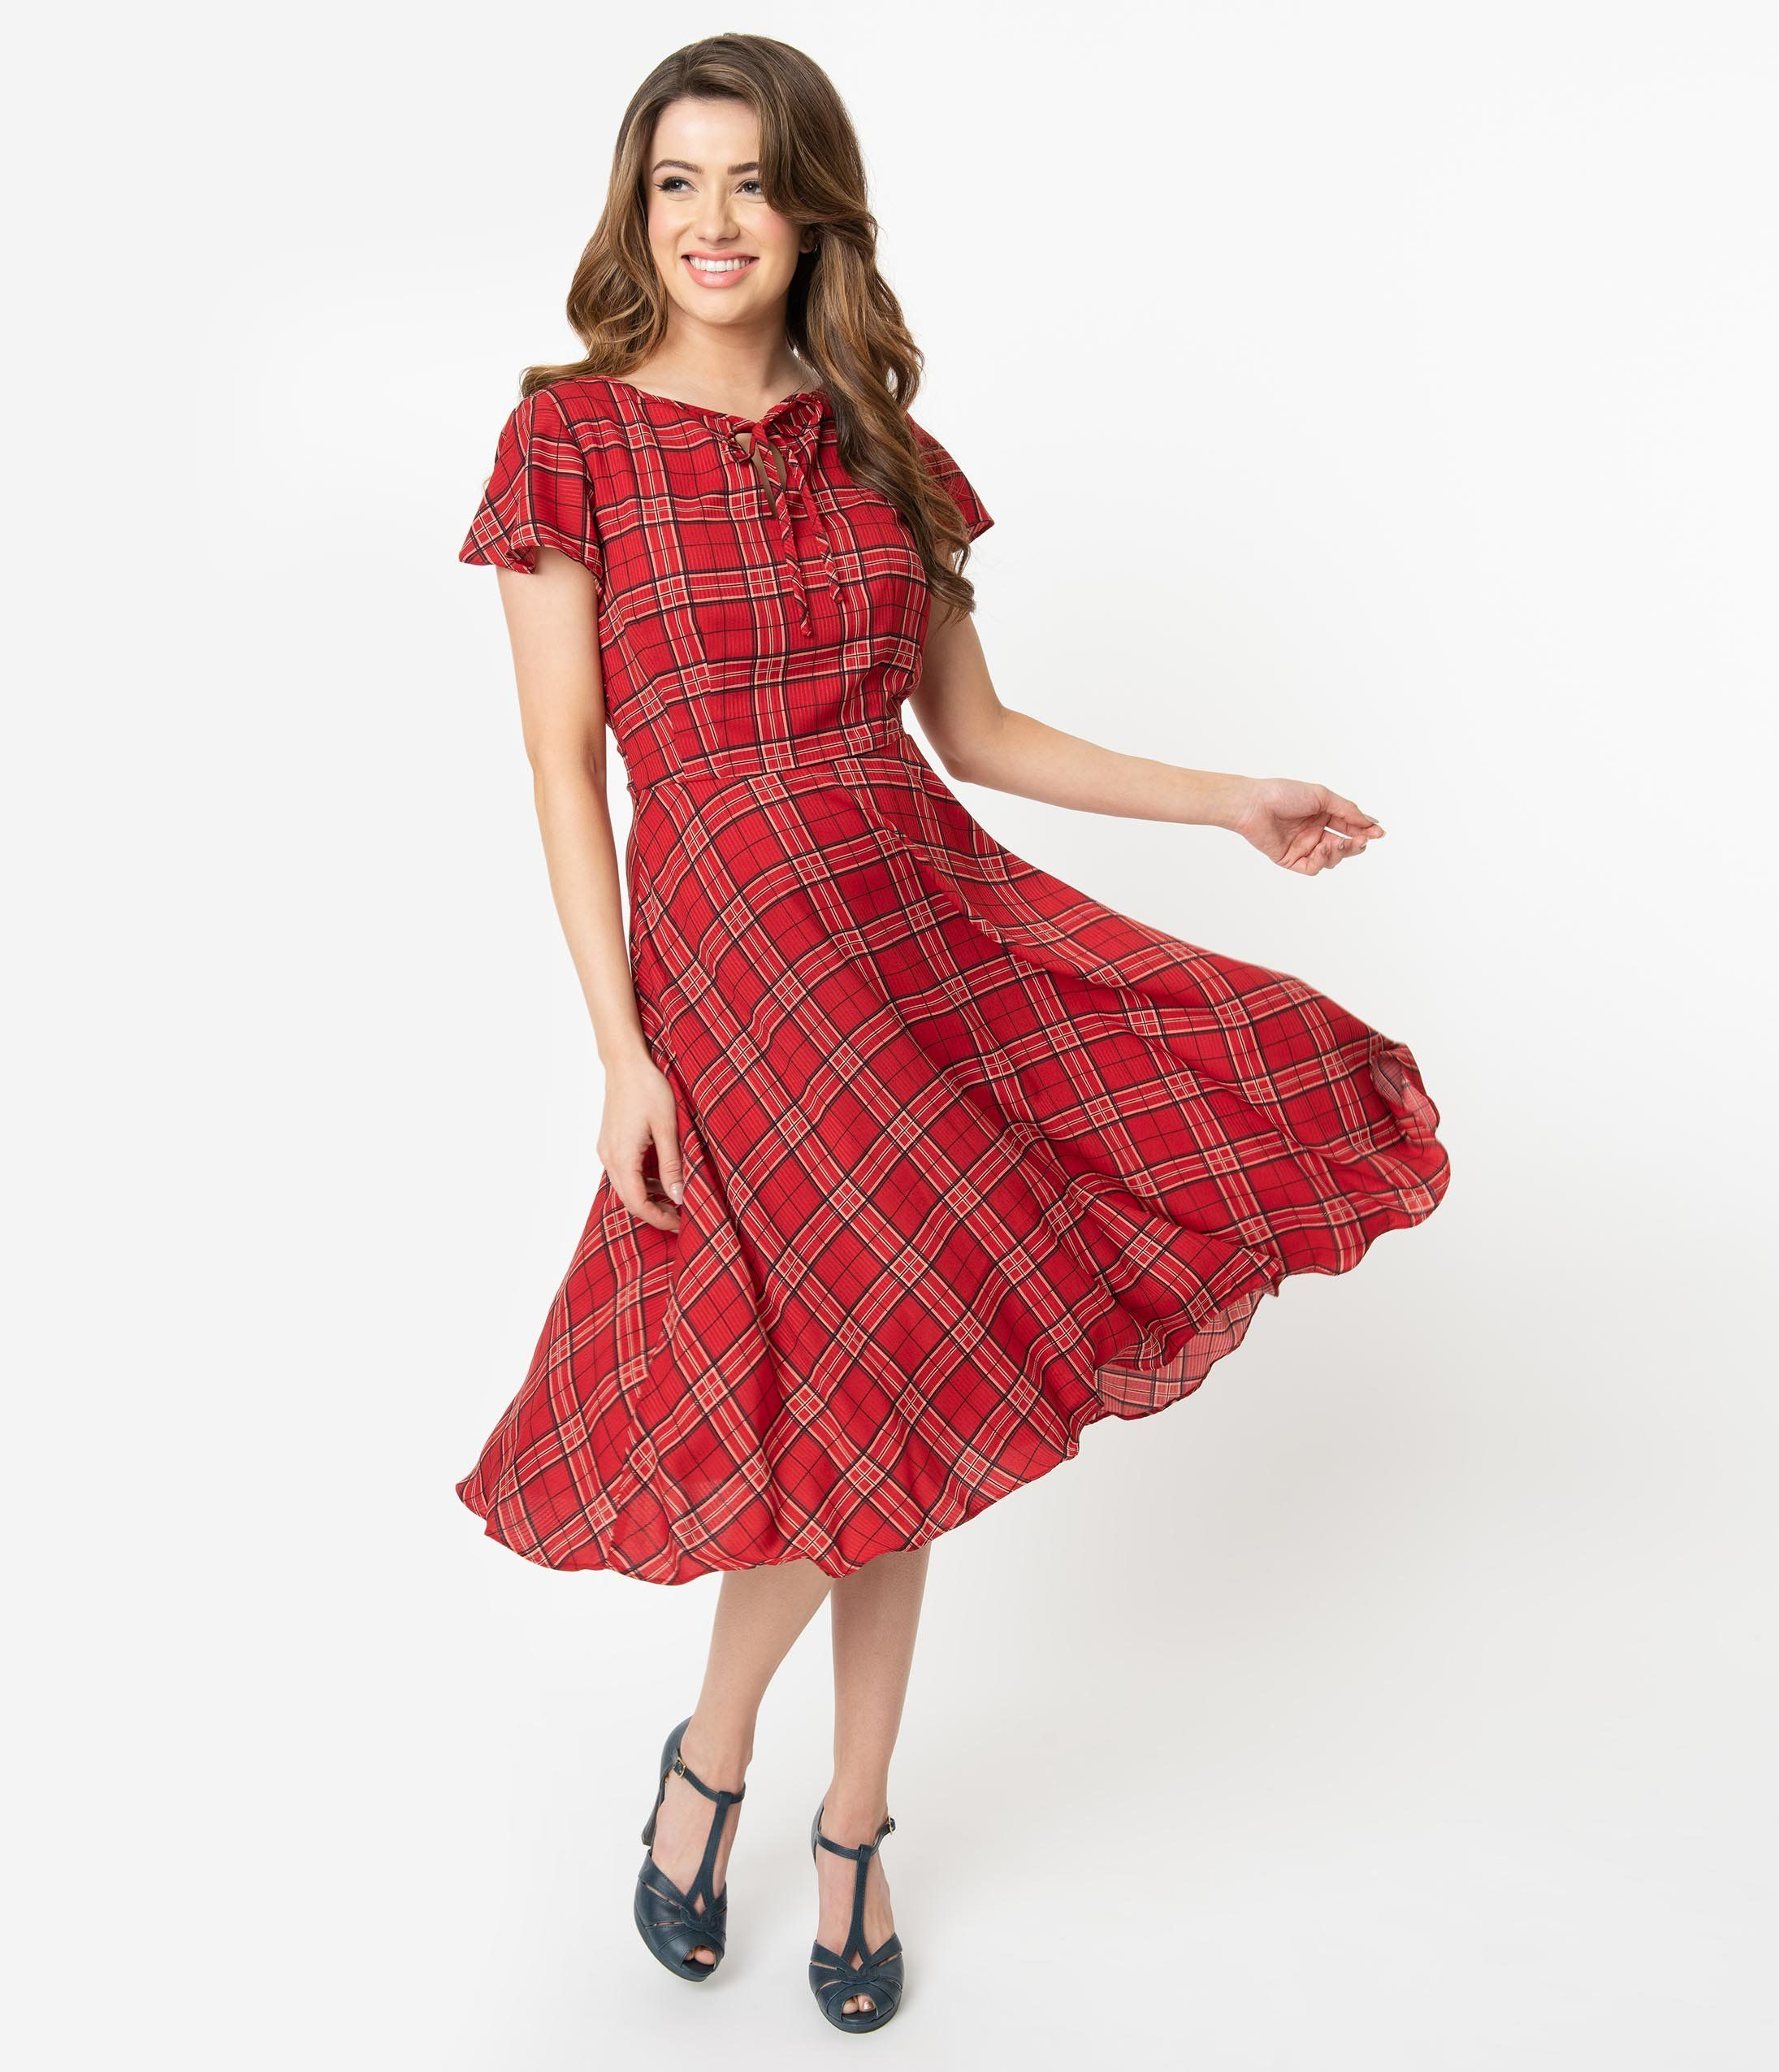 Vintage Christmas Dress Party Dresses Night Out Outfits Swing Dress 1940s Fashion Vintage Christmas Dress [ 2550 x 2190 Pixel ]